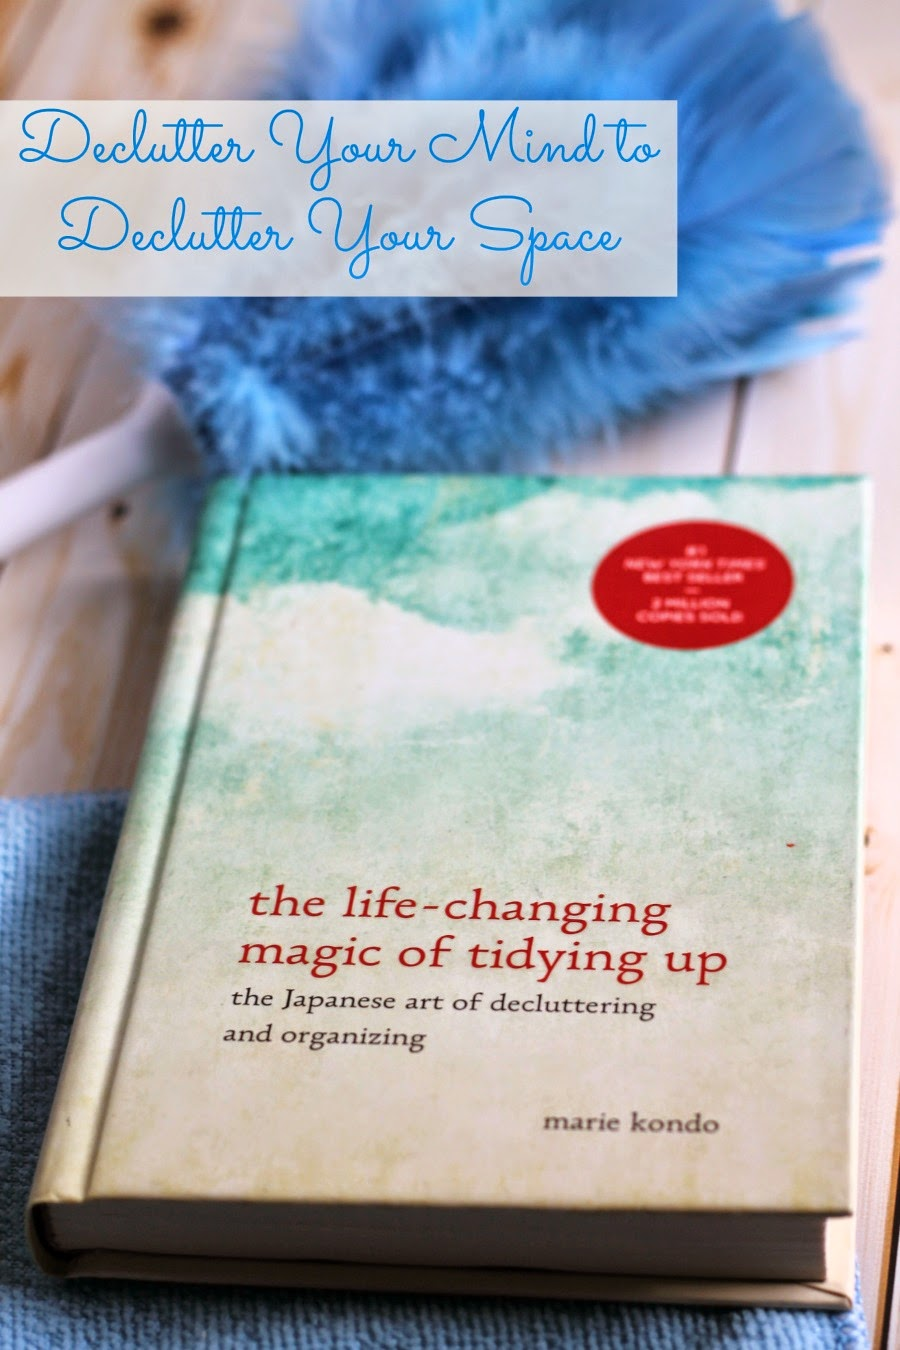 Do you do a major spring cleaning each year just to have it all end up cluttered & disorganized within a few months? Then you just may need to learn how Declutter Your Mind to Declutter Your Space. Get entered to win a copy of The Life-Changing Magic of Tidying Up!